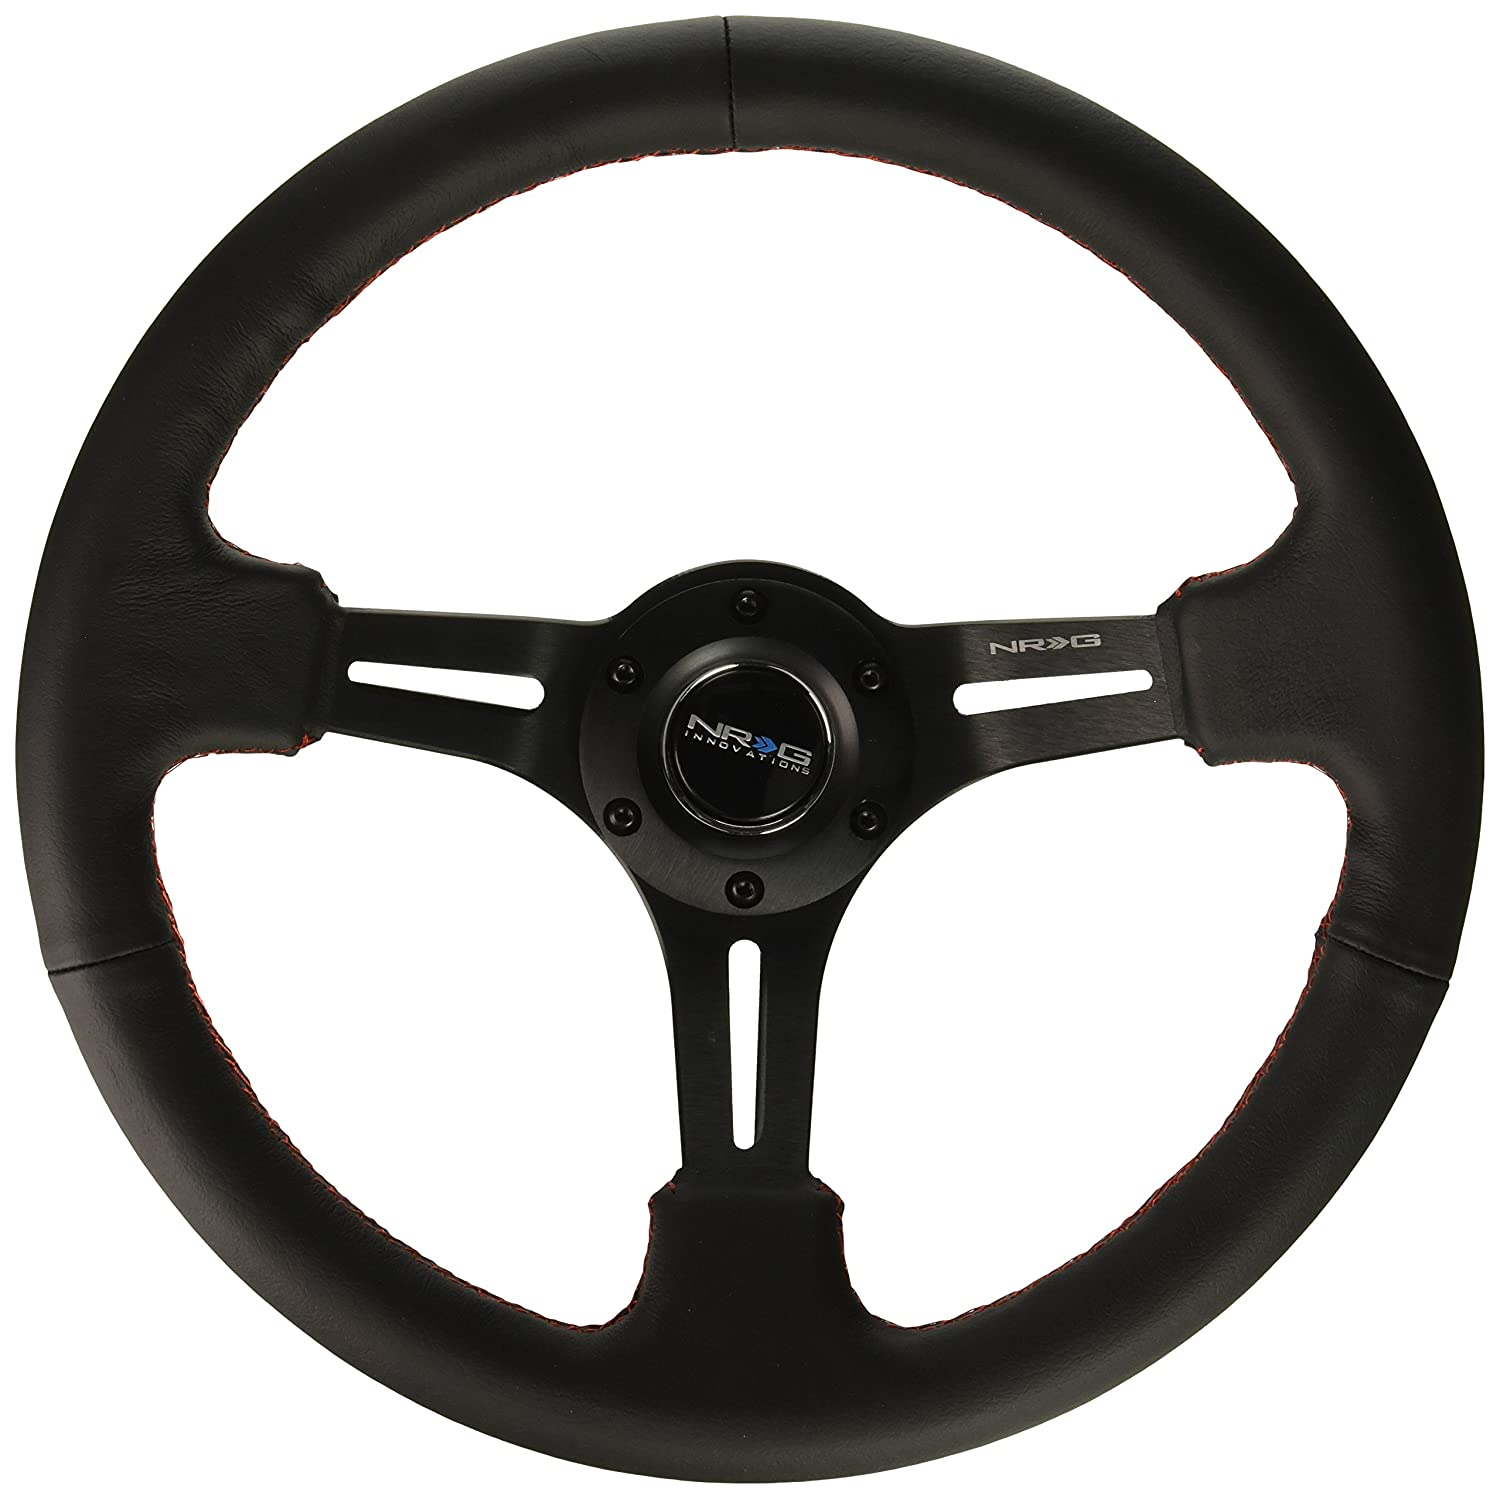 350mm Sport Steering Wheel Black Leather with Red Stitching 3 Deep NRG Innovations RST-018R-RS Reinforced Steering Wheel